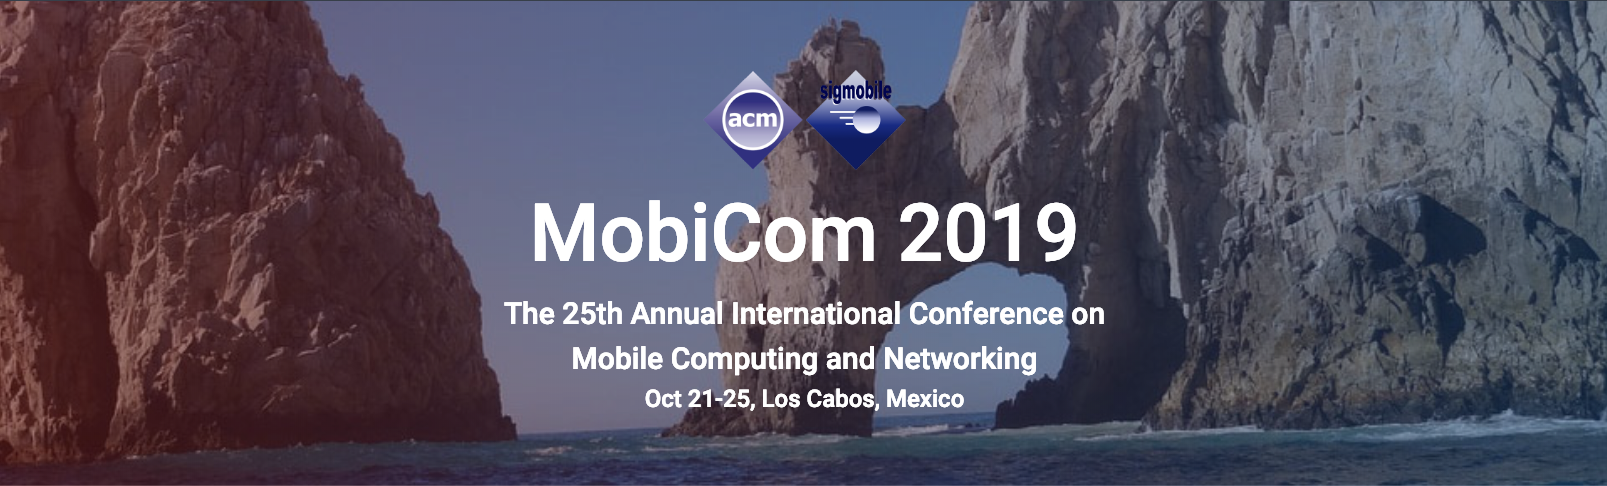 The 25th Annual International Conference on Mobile Computing and Networking (ACM MobiCom)